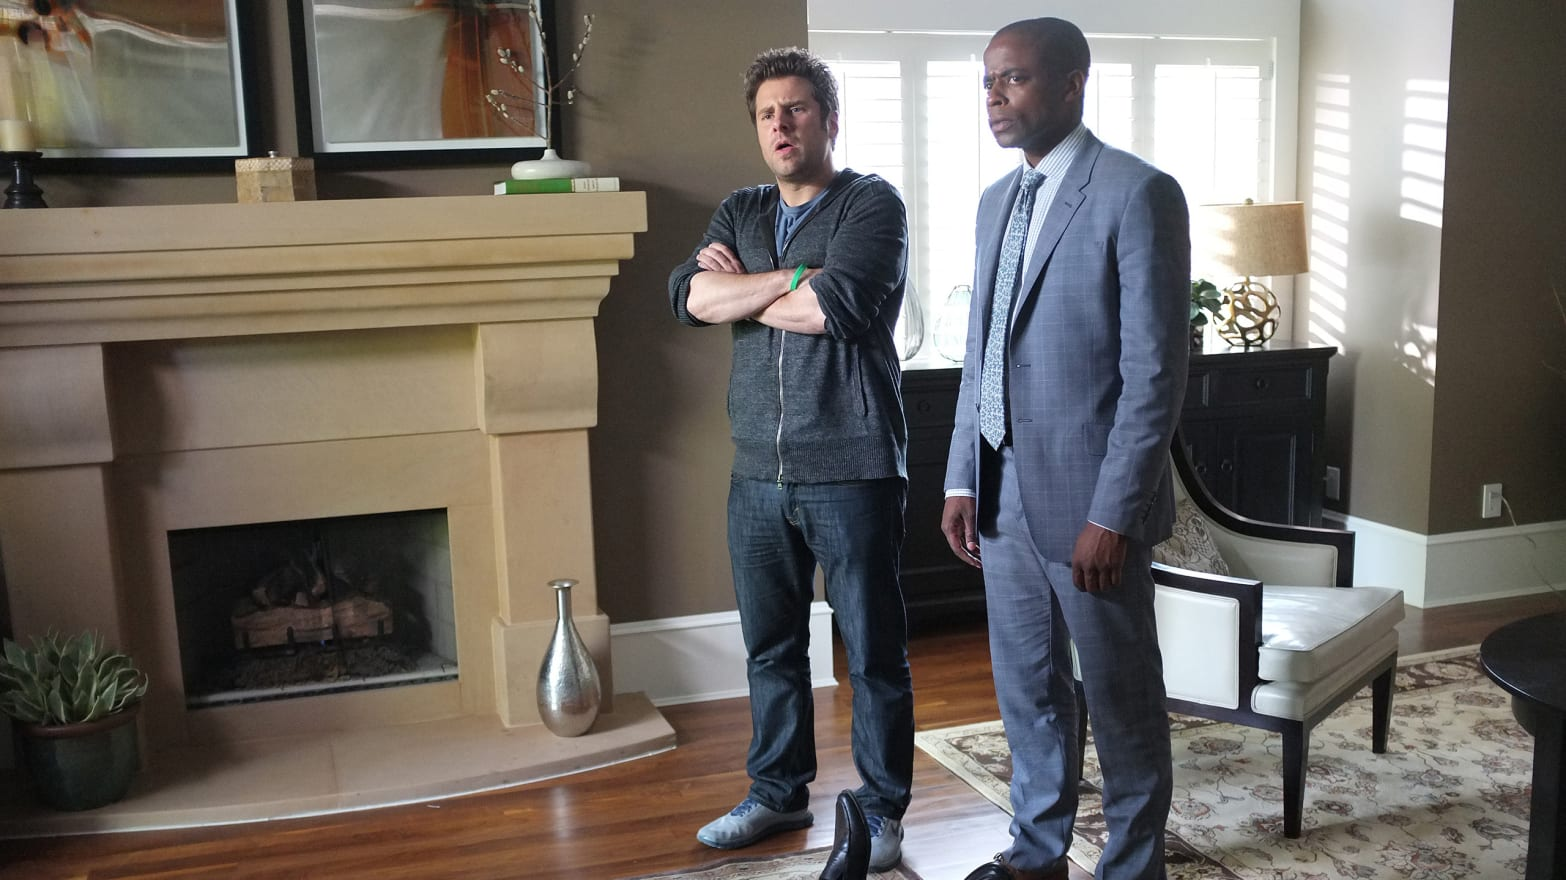 I Watched 'Psych' For 8 Years and All I Got Was This